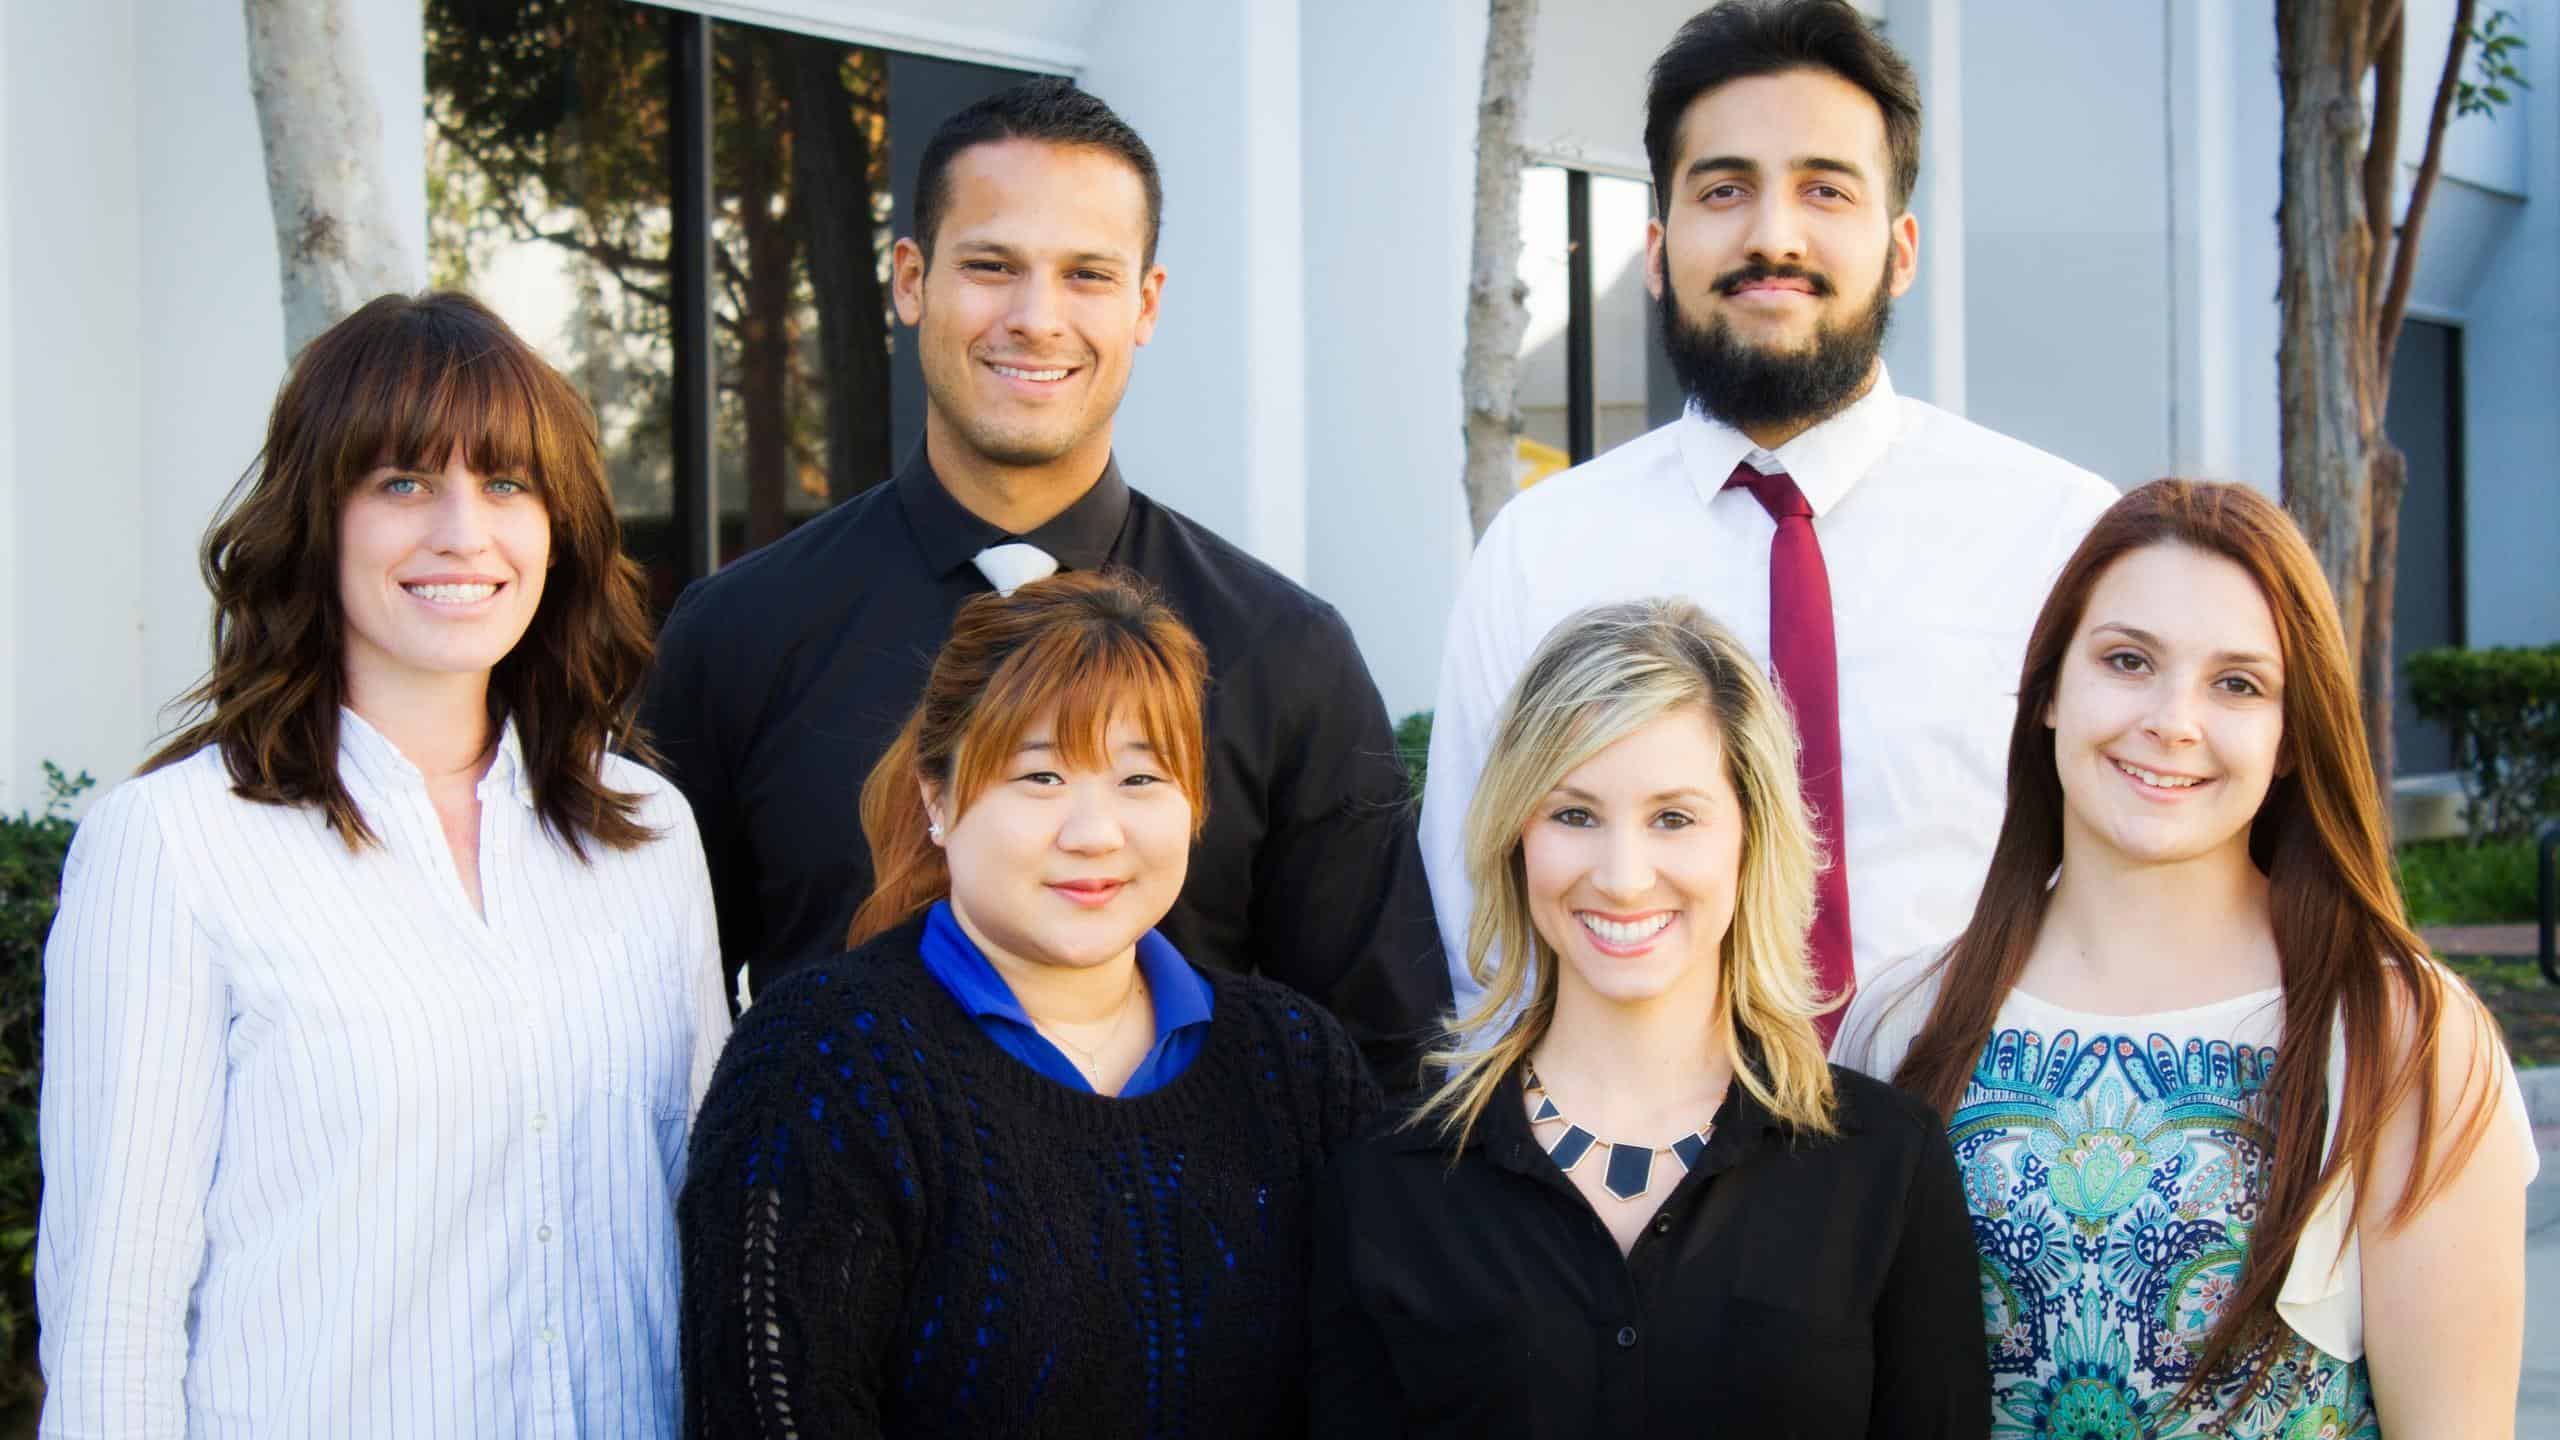 The Student Occupational Therapy Association Of Stanbridge (SOTAS)  Executive Board Leads Fellow Students In Working Together To Promote OT To  Their ...